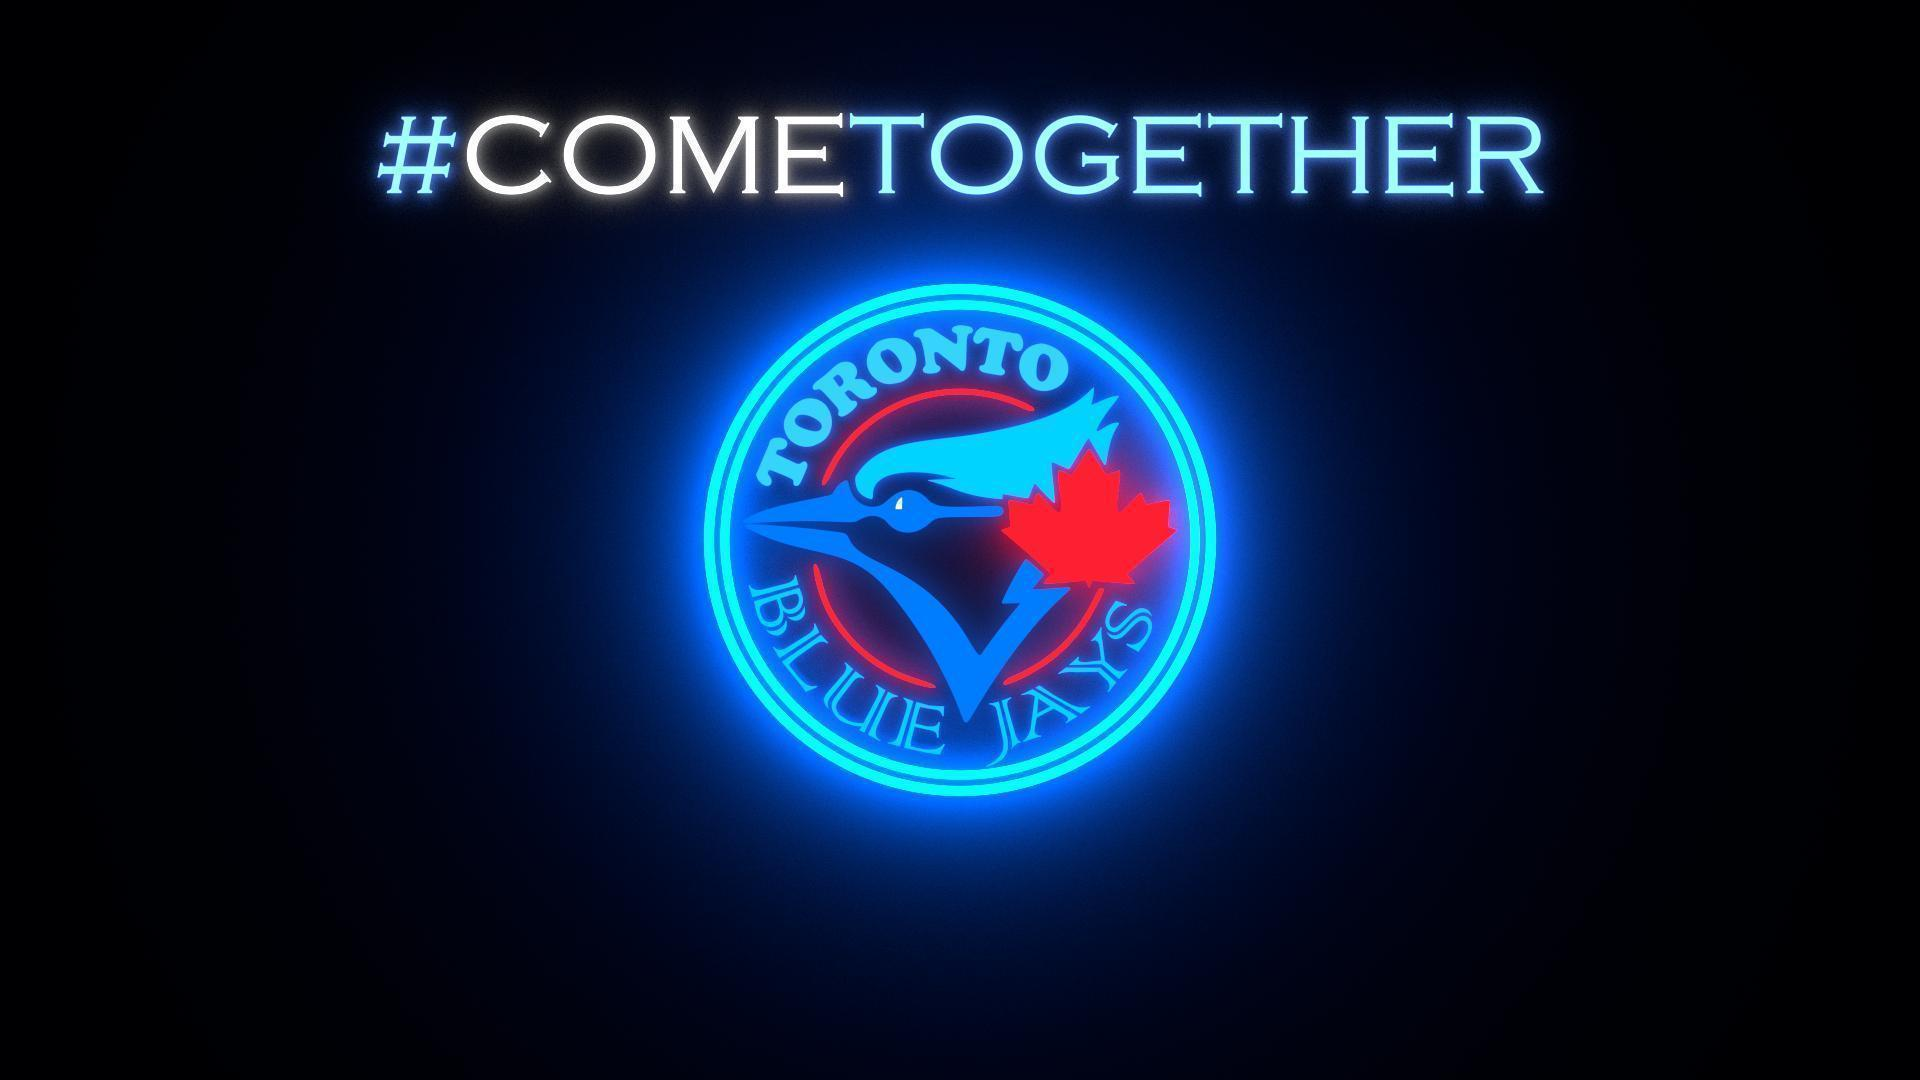 Toronto Blue Jays wallpapers HD backgrounds download Facebook Covers